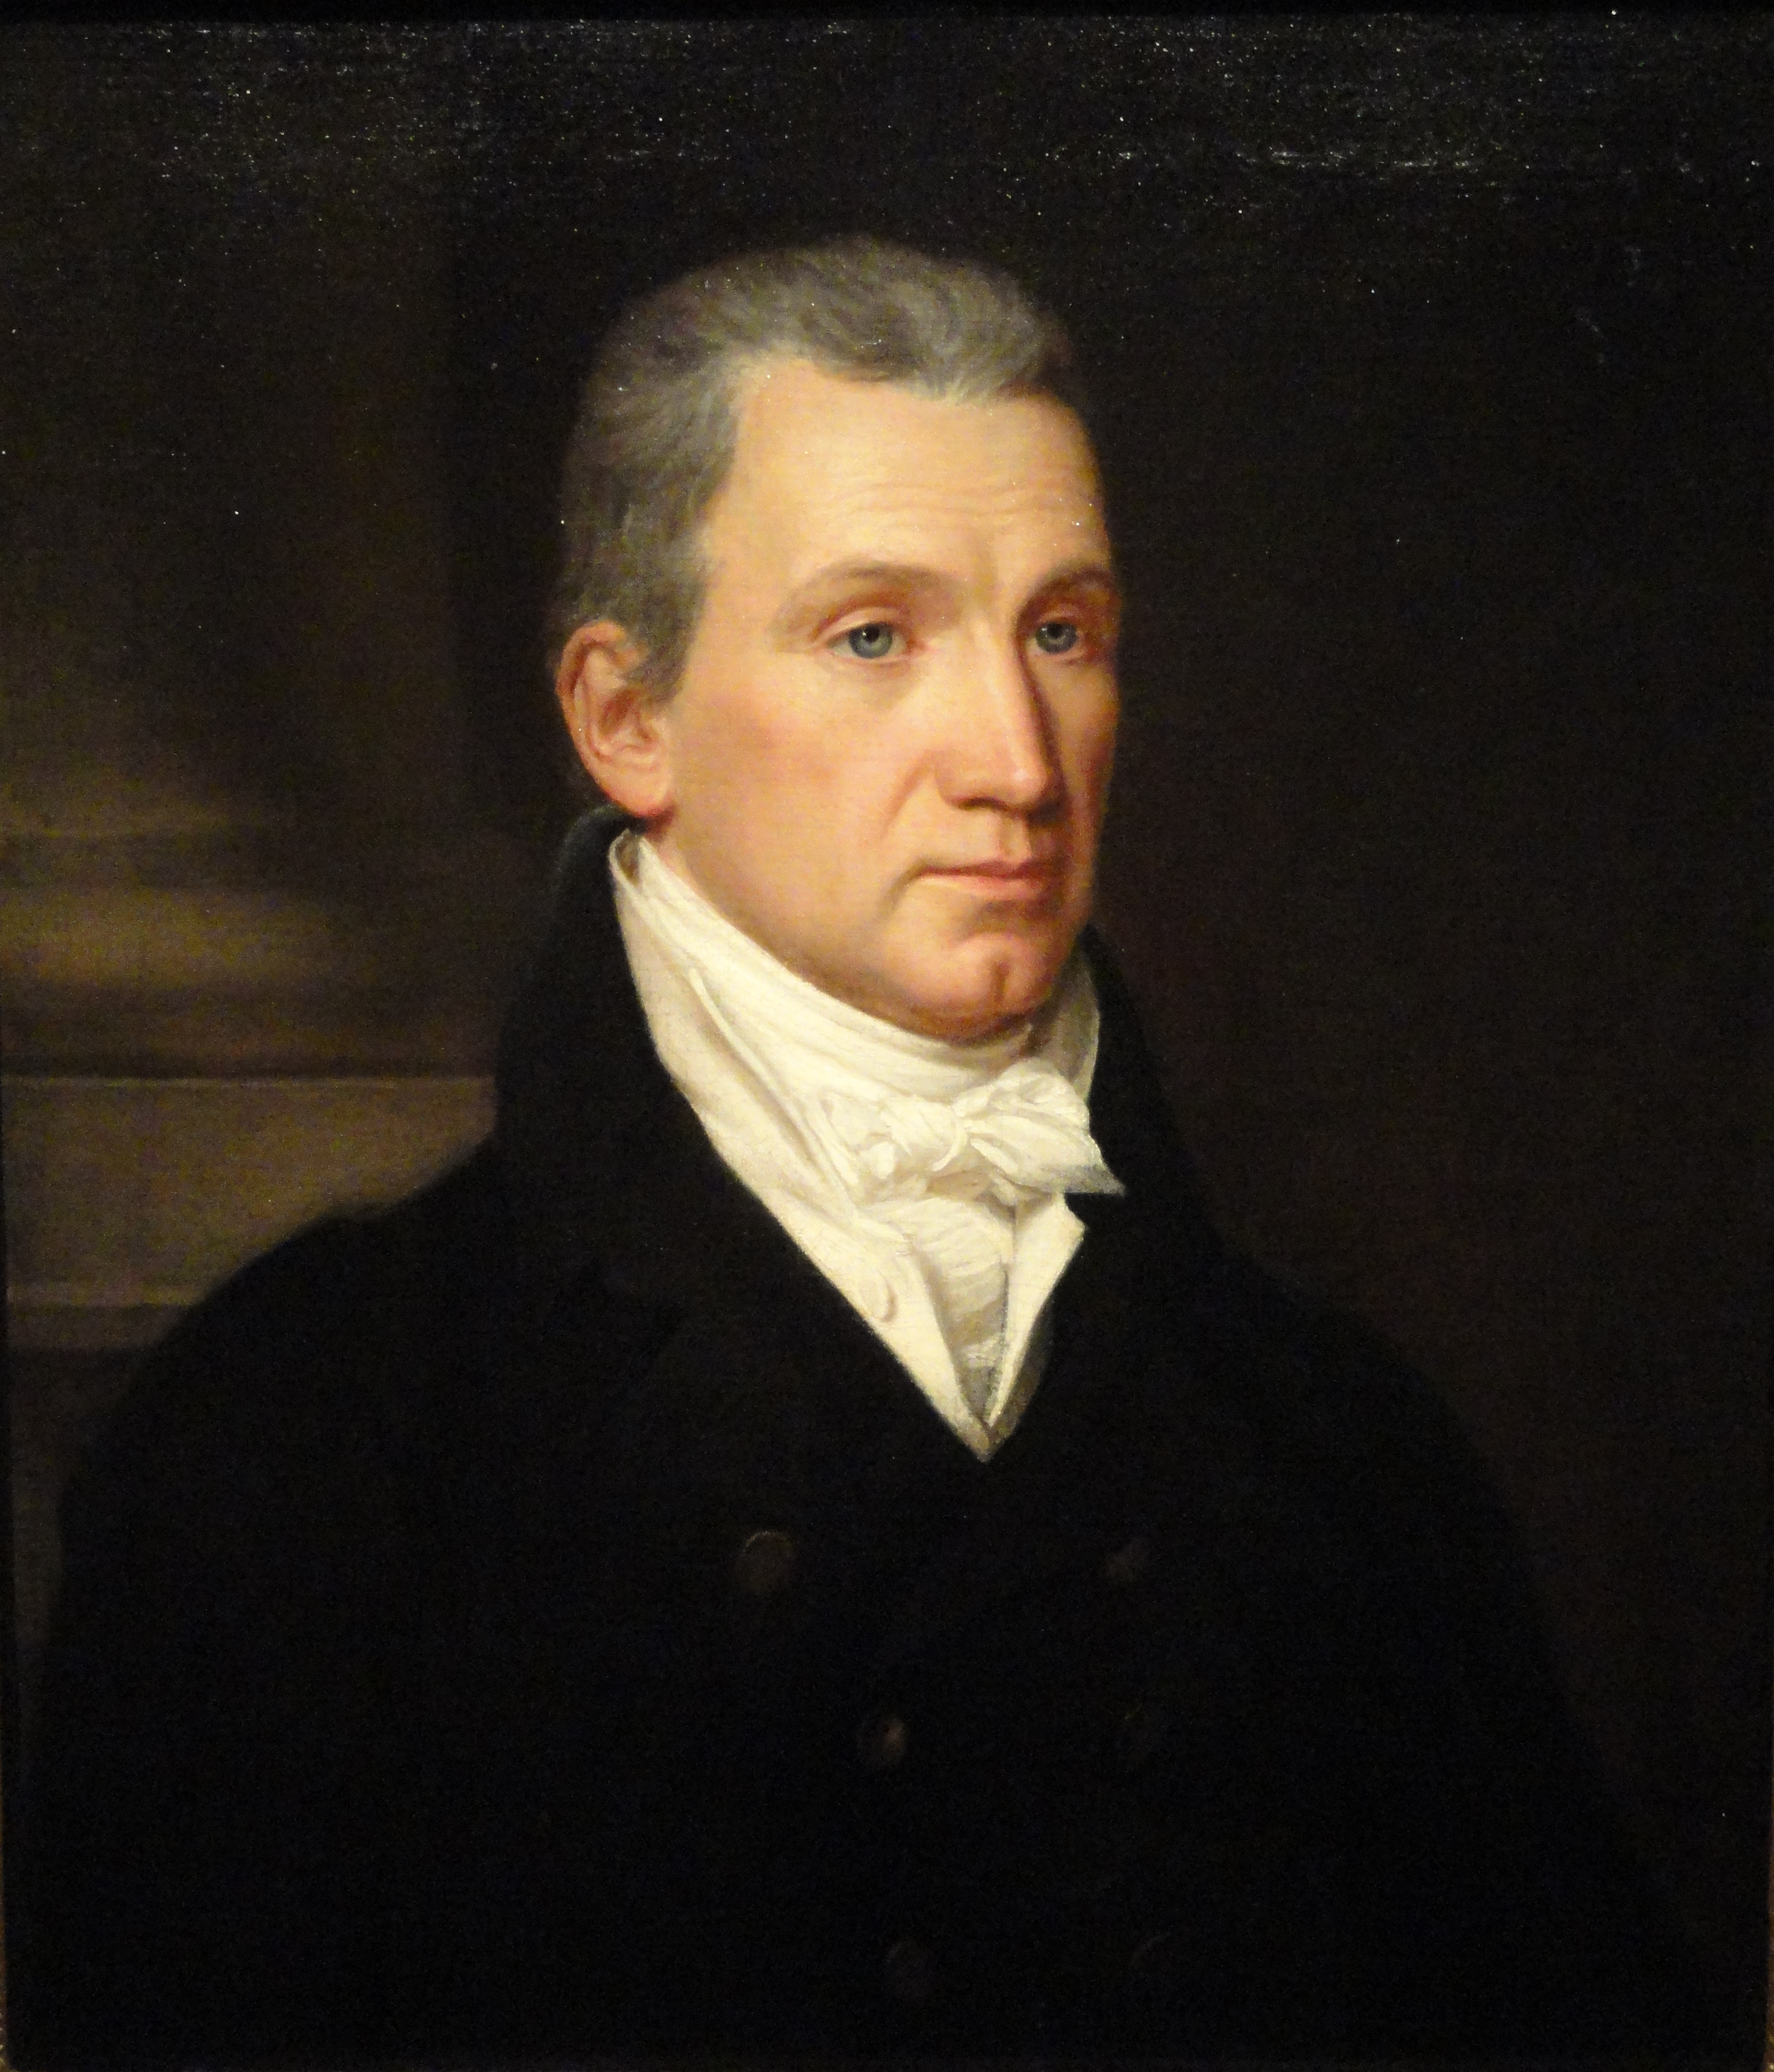 https://upload.wikimedia.org/wikipedia/commons/9/9b/James_Monroe_by_John_Vanderlyn,_1816_-_DSC03228.JPG